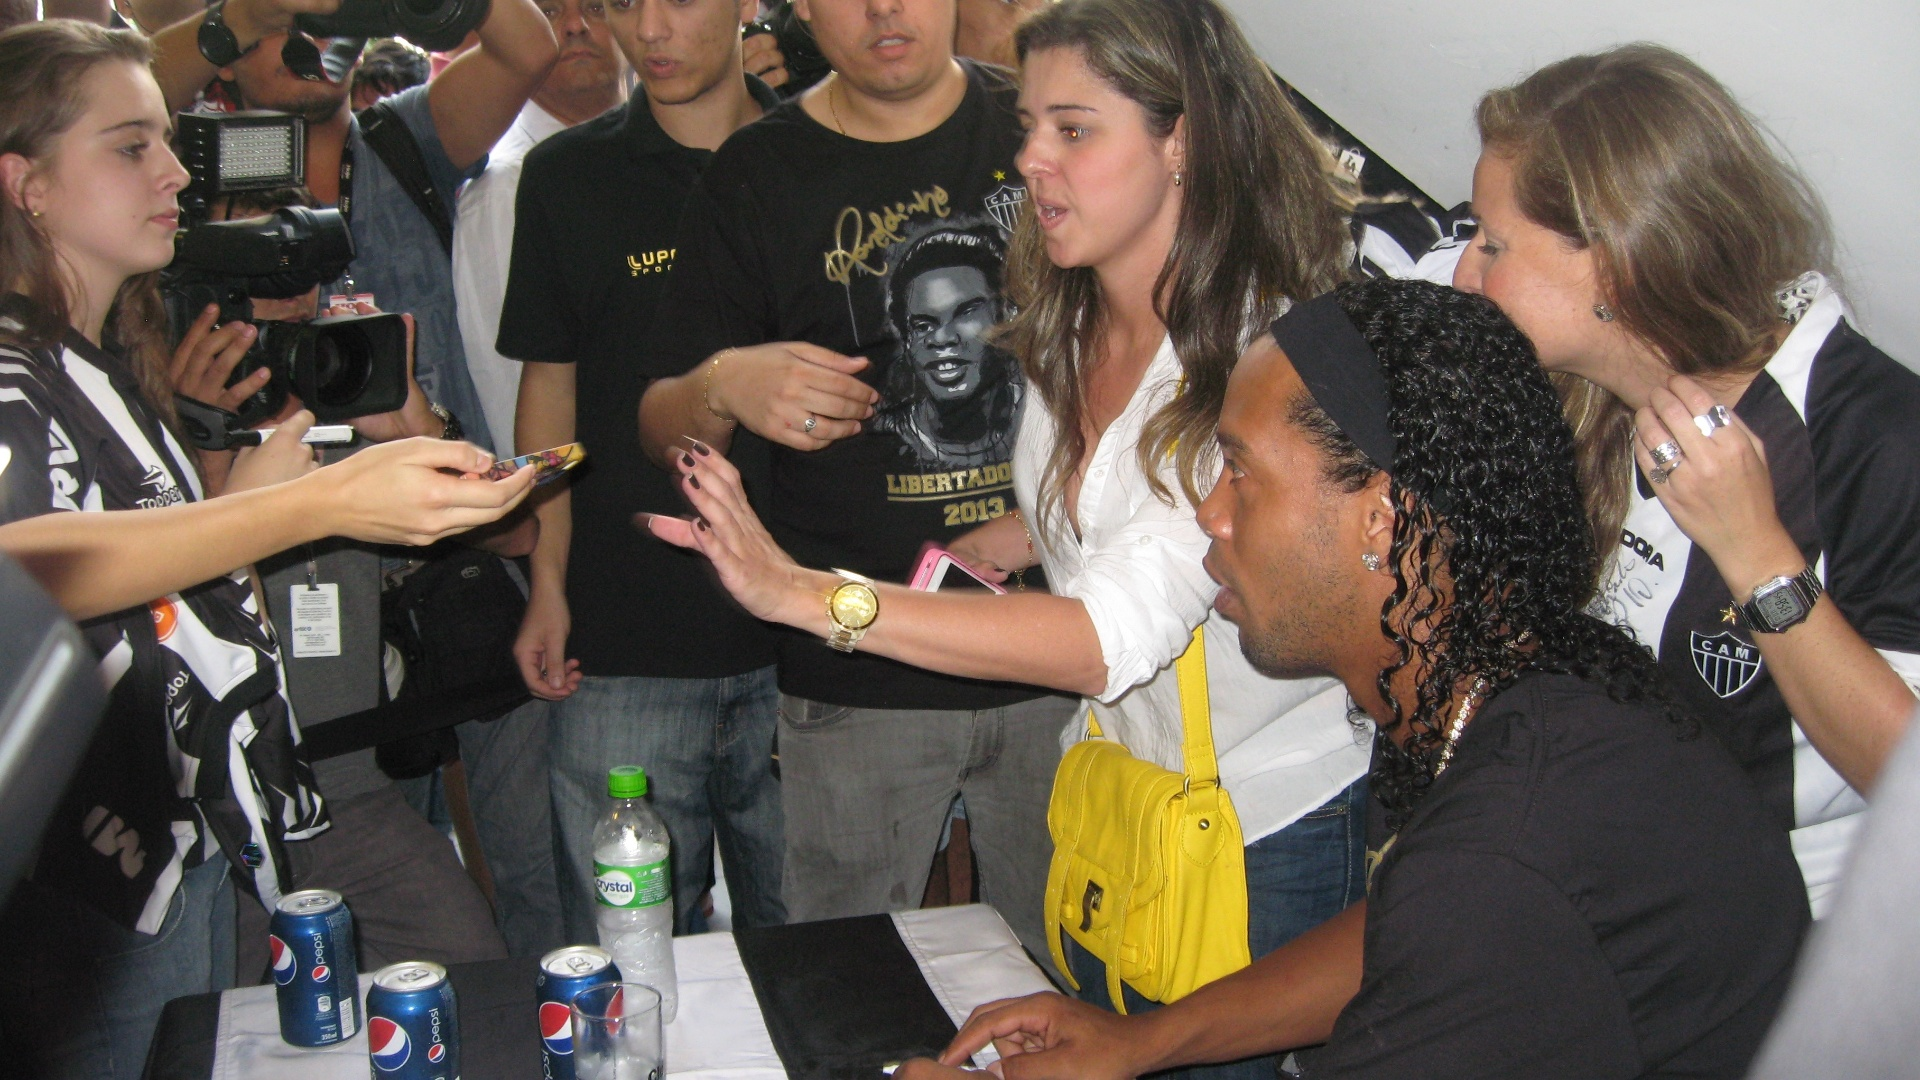 29/04/2013 - Ronaldinho Gacho cercado por fs durante lanamento de produtos com sua marca